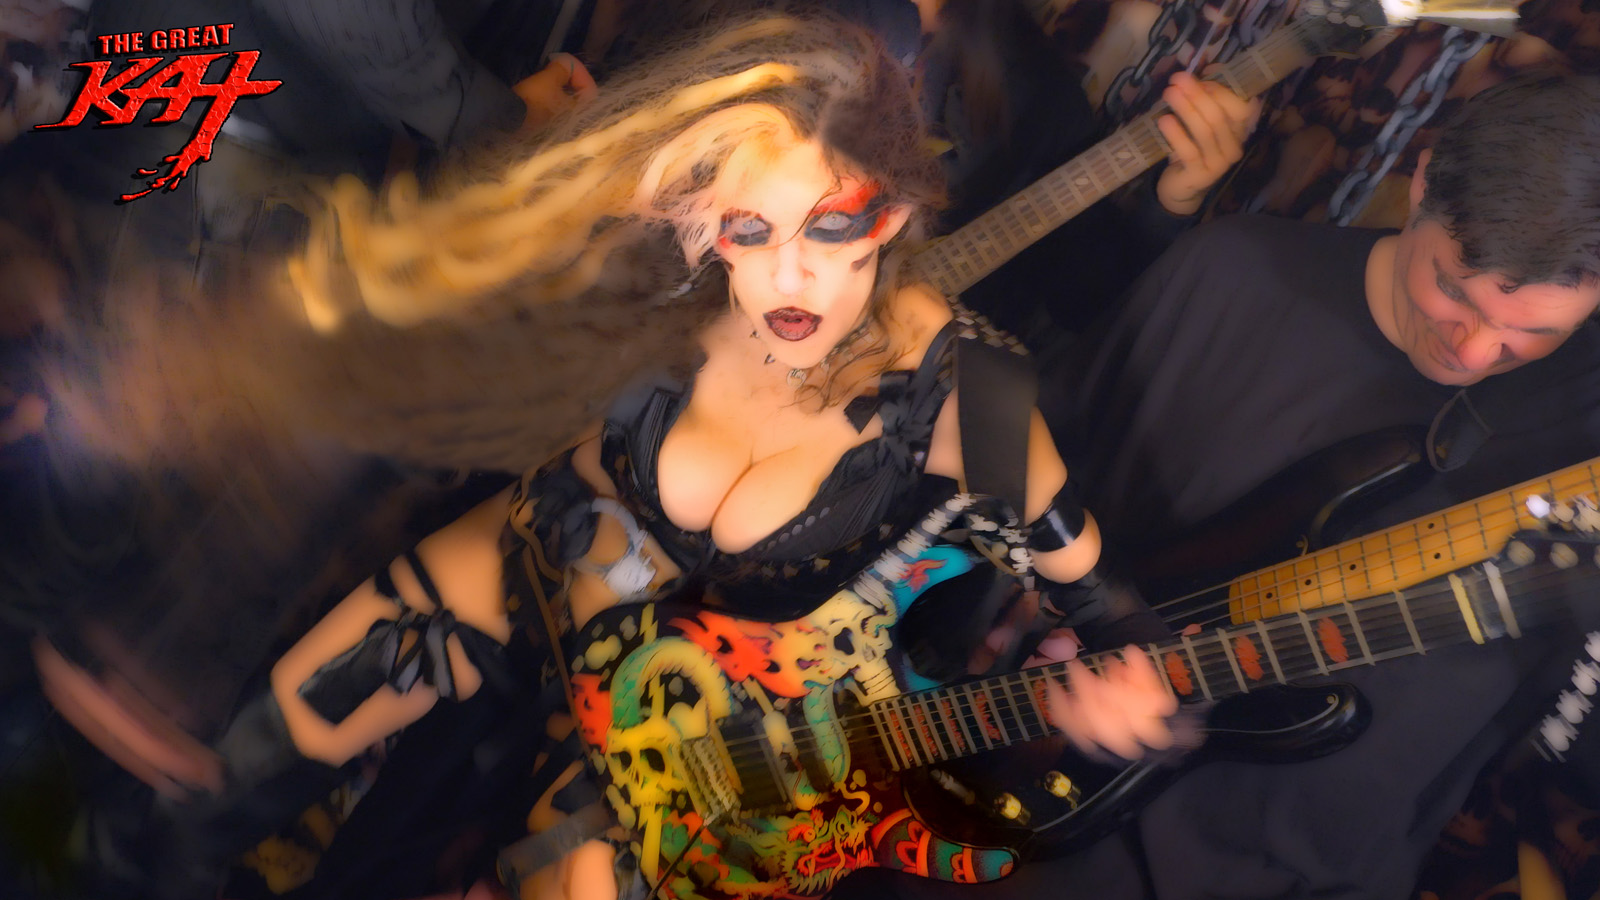 """MESMERIZING SHE-DEVIL! From The Great Kat's LISZT'S """"HUNGARIAN RHAPSODY #2"""" MUSIC VIDEO!"""